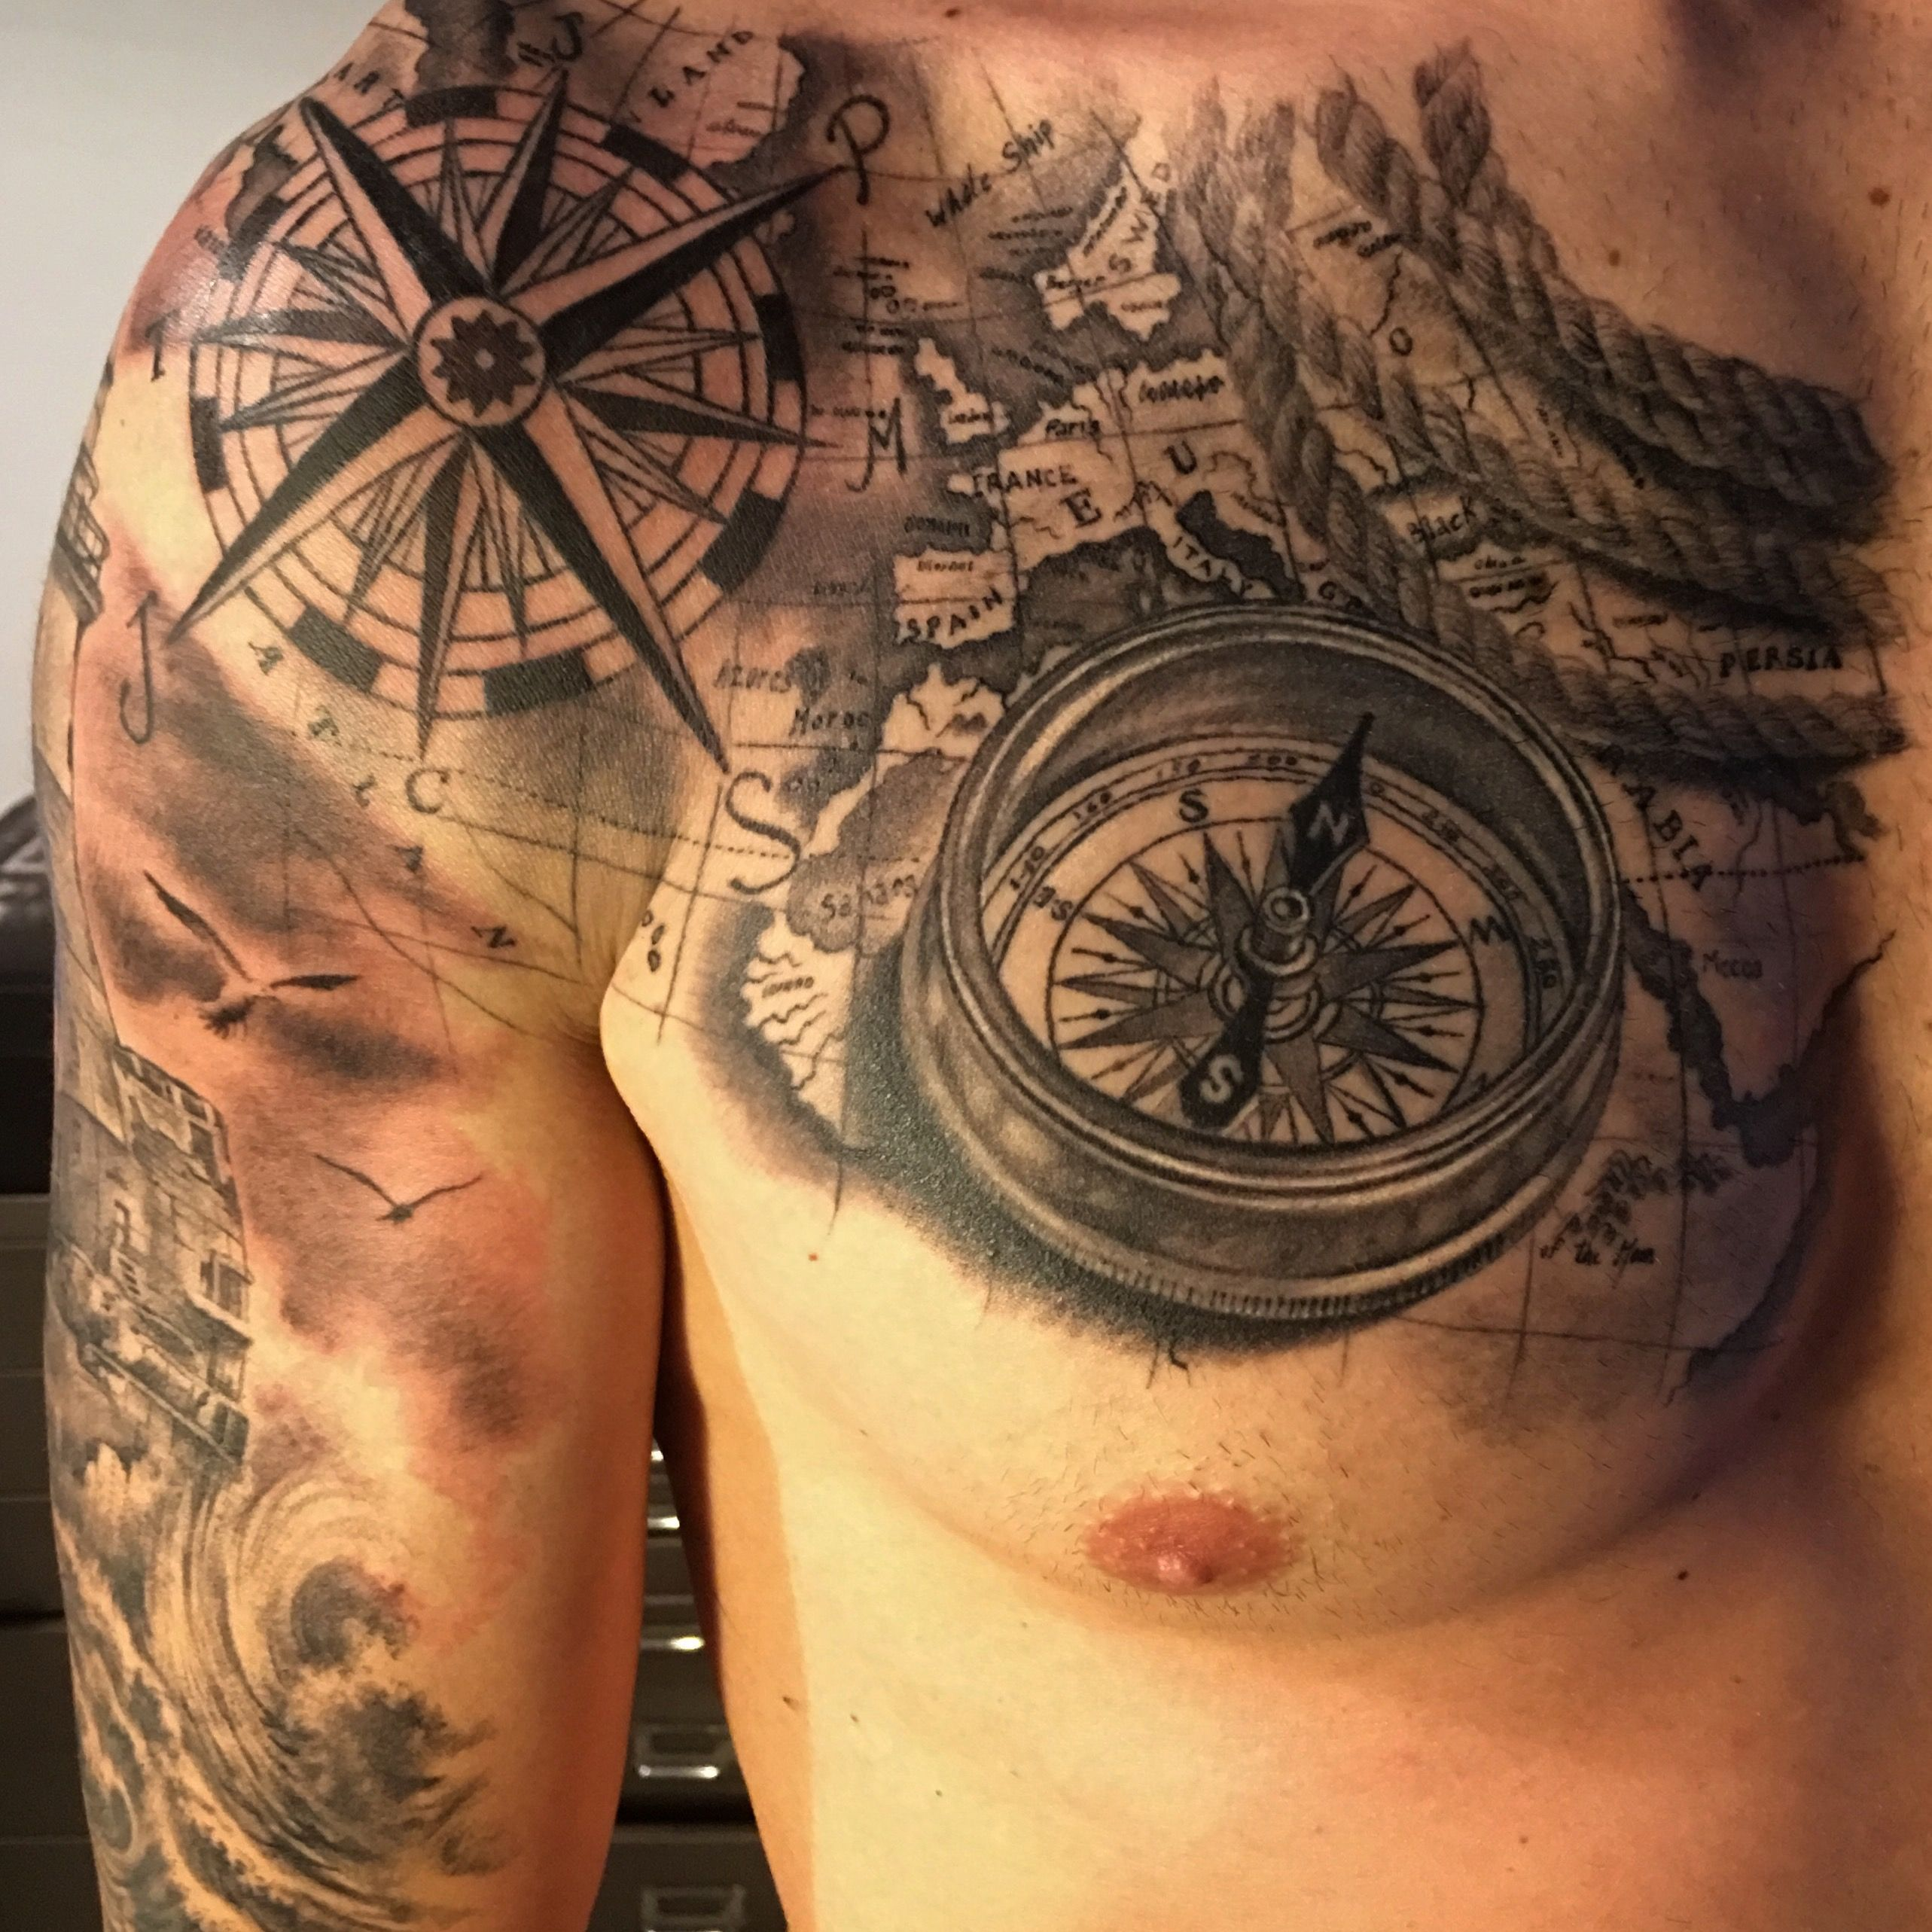 Rsultat de recherche dimages pour tatouage epauliere tatto cooltop tattoo trends compass map tattoo by fabrizio converso gumiabroncs Image collections